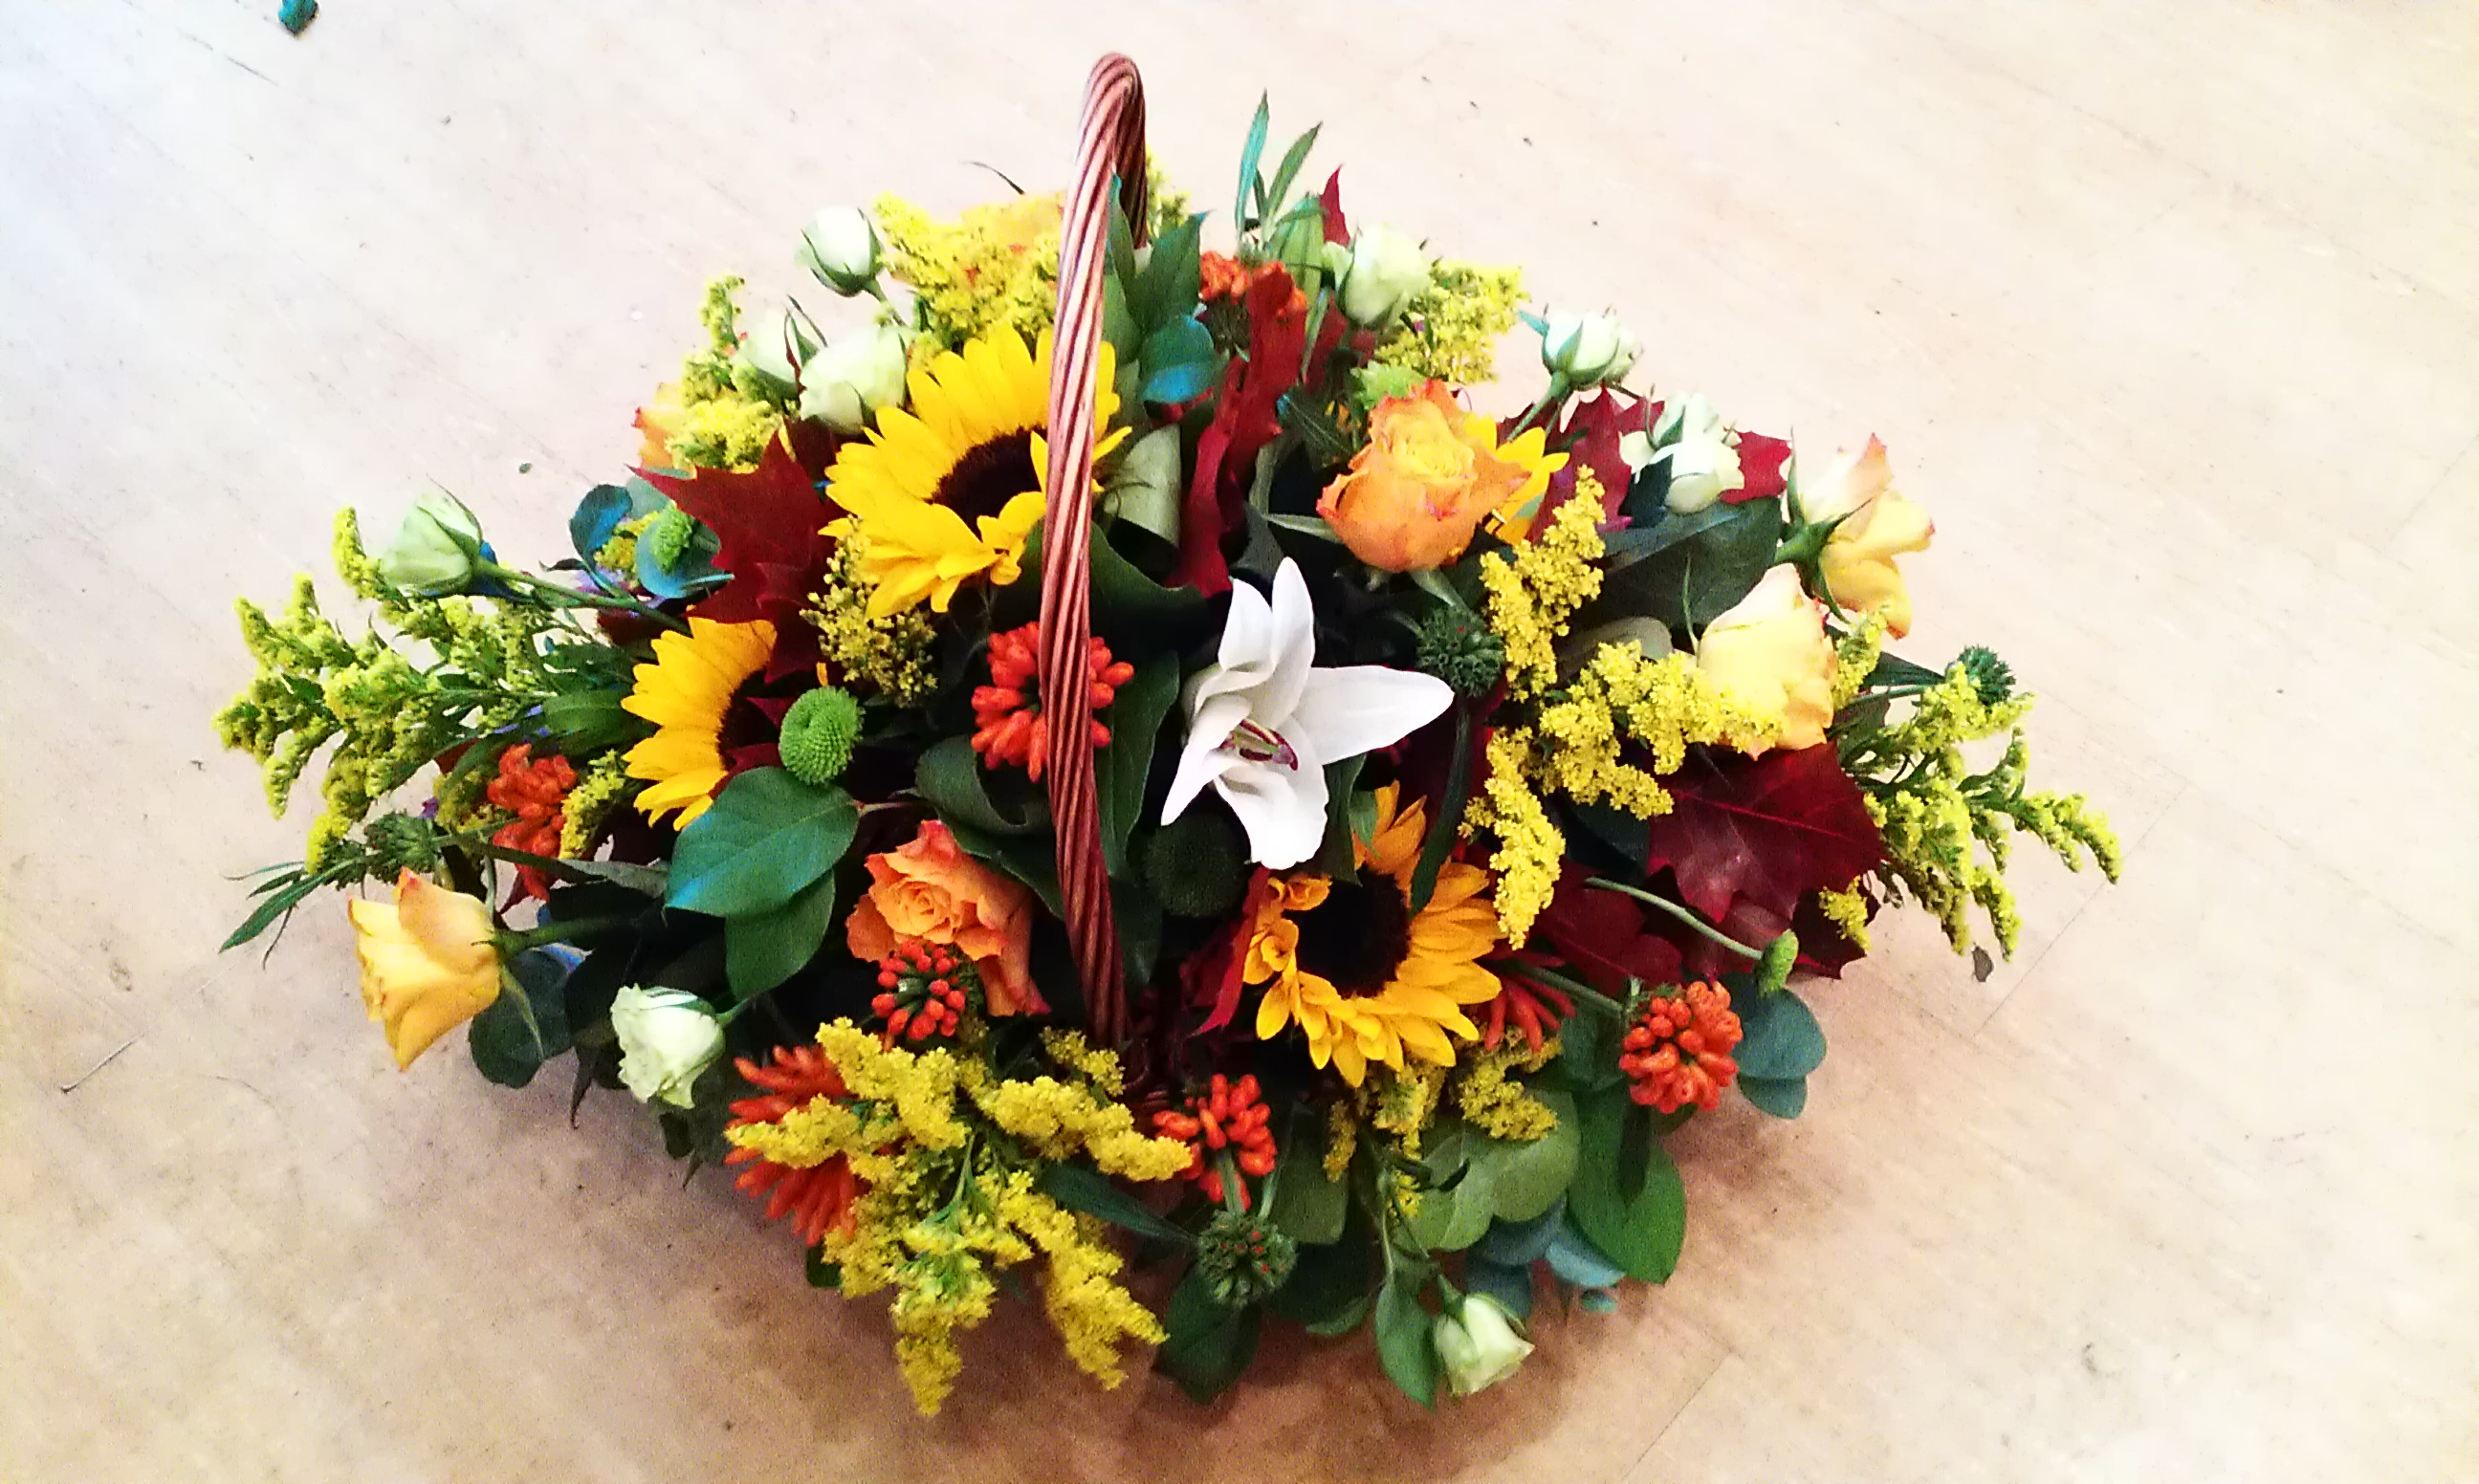 Chilli Peppers Florist